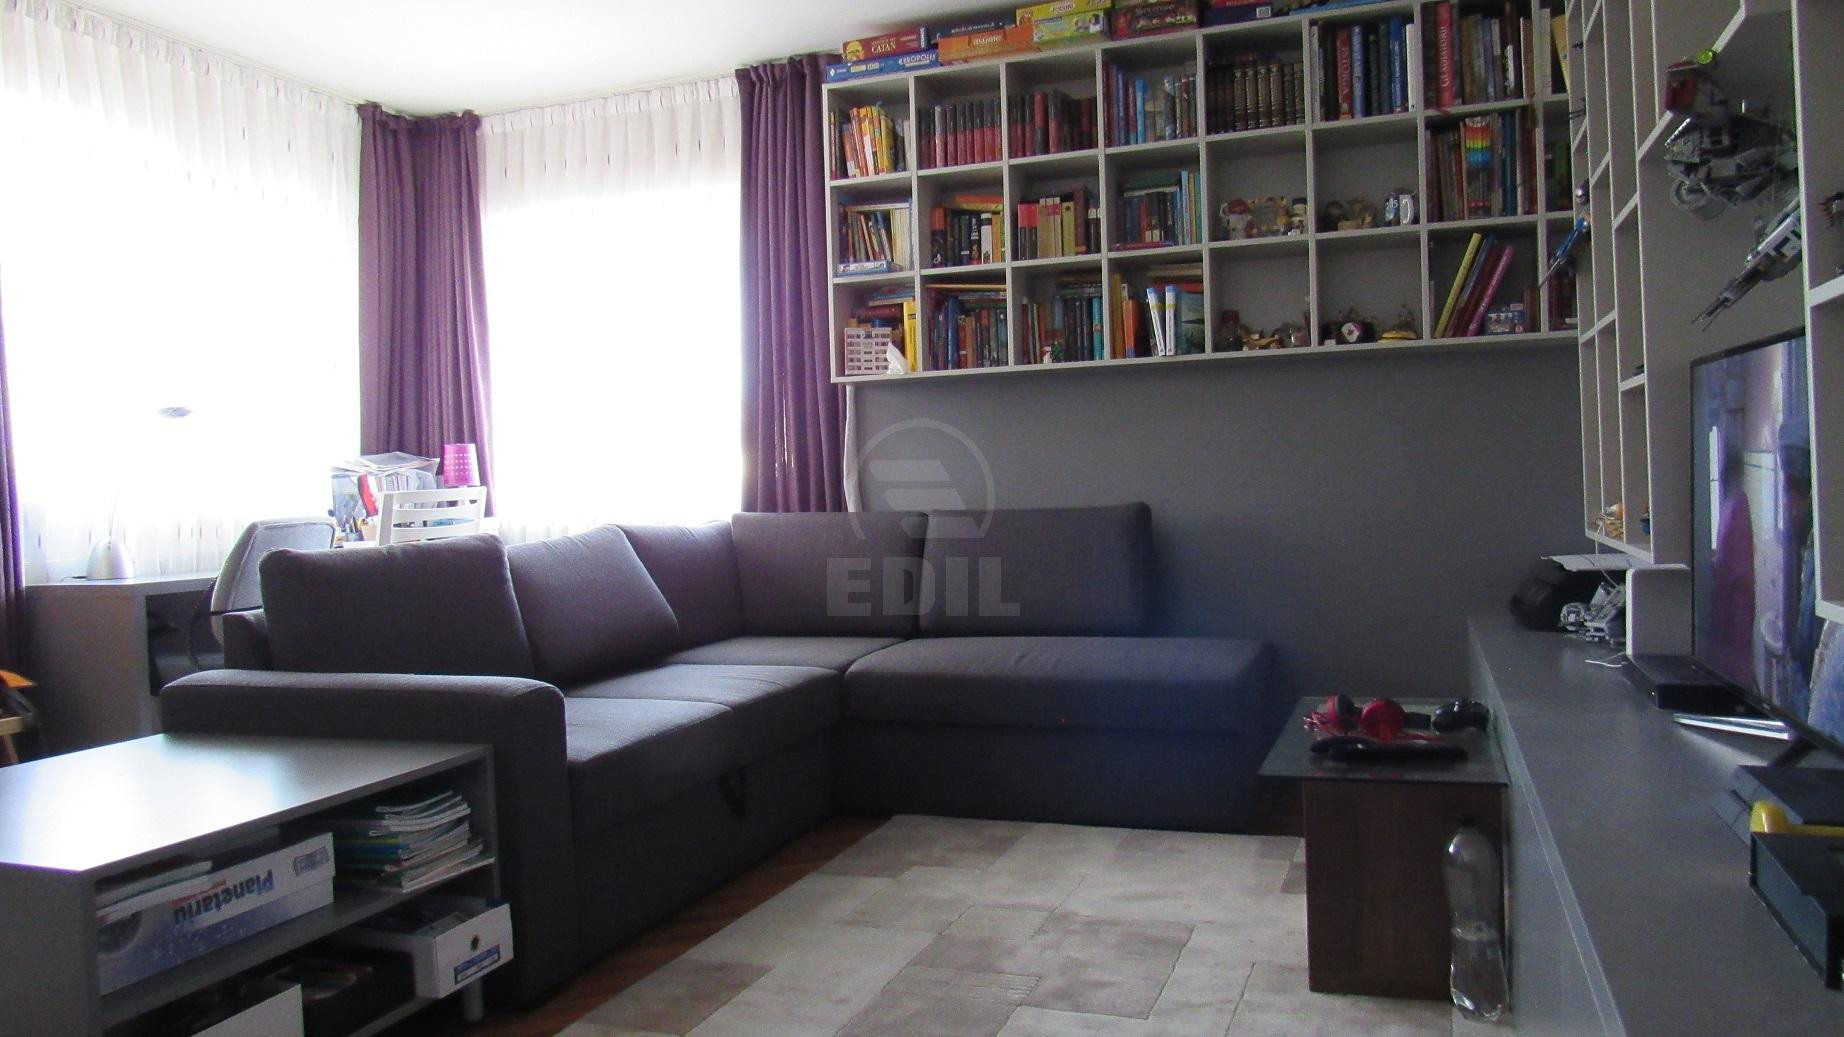 House for sale 2 rooms, CACJ282704-1